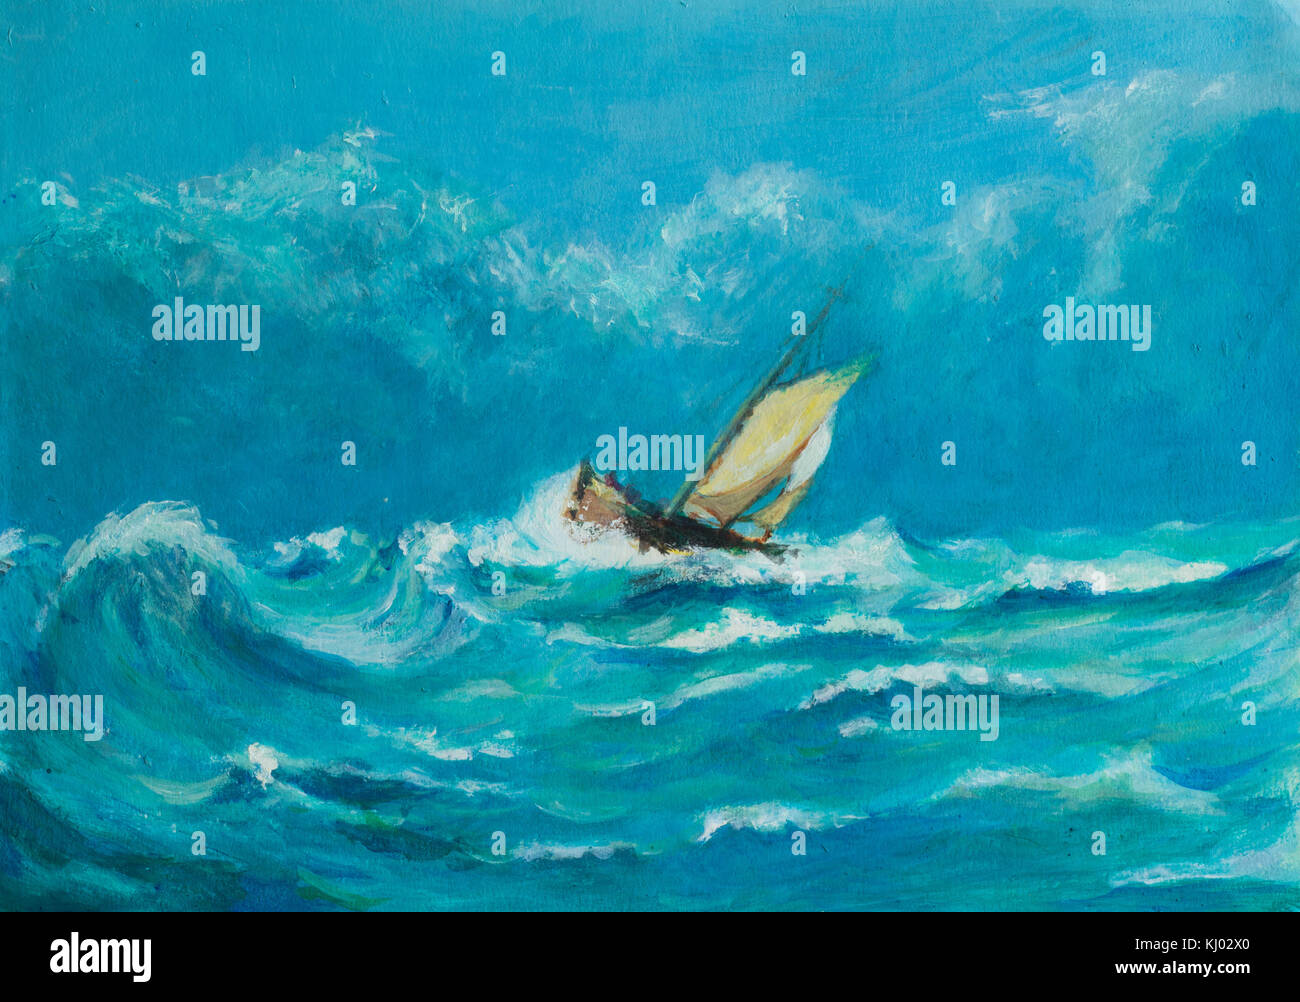 Original oil painting of lonely little sailing ship battling in a Stock  Photo - Alamy